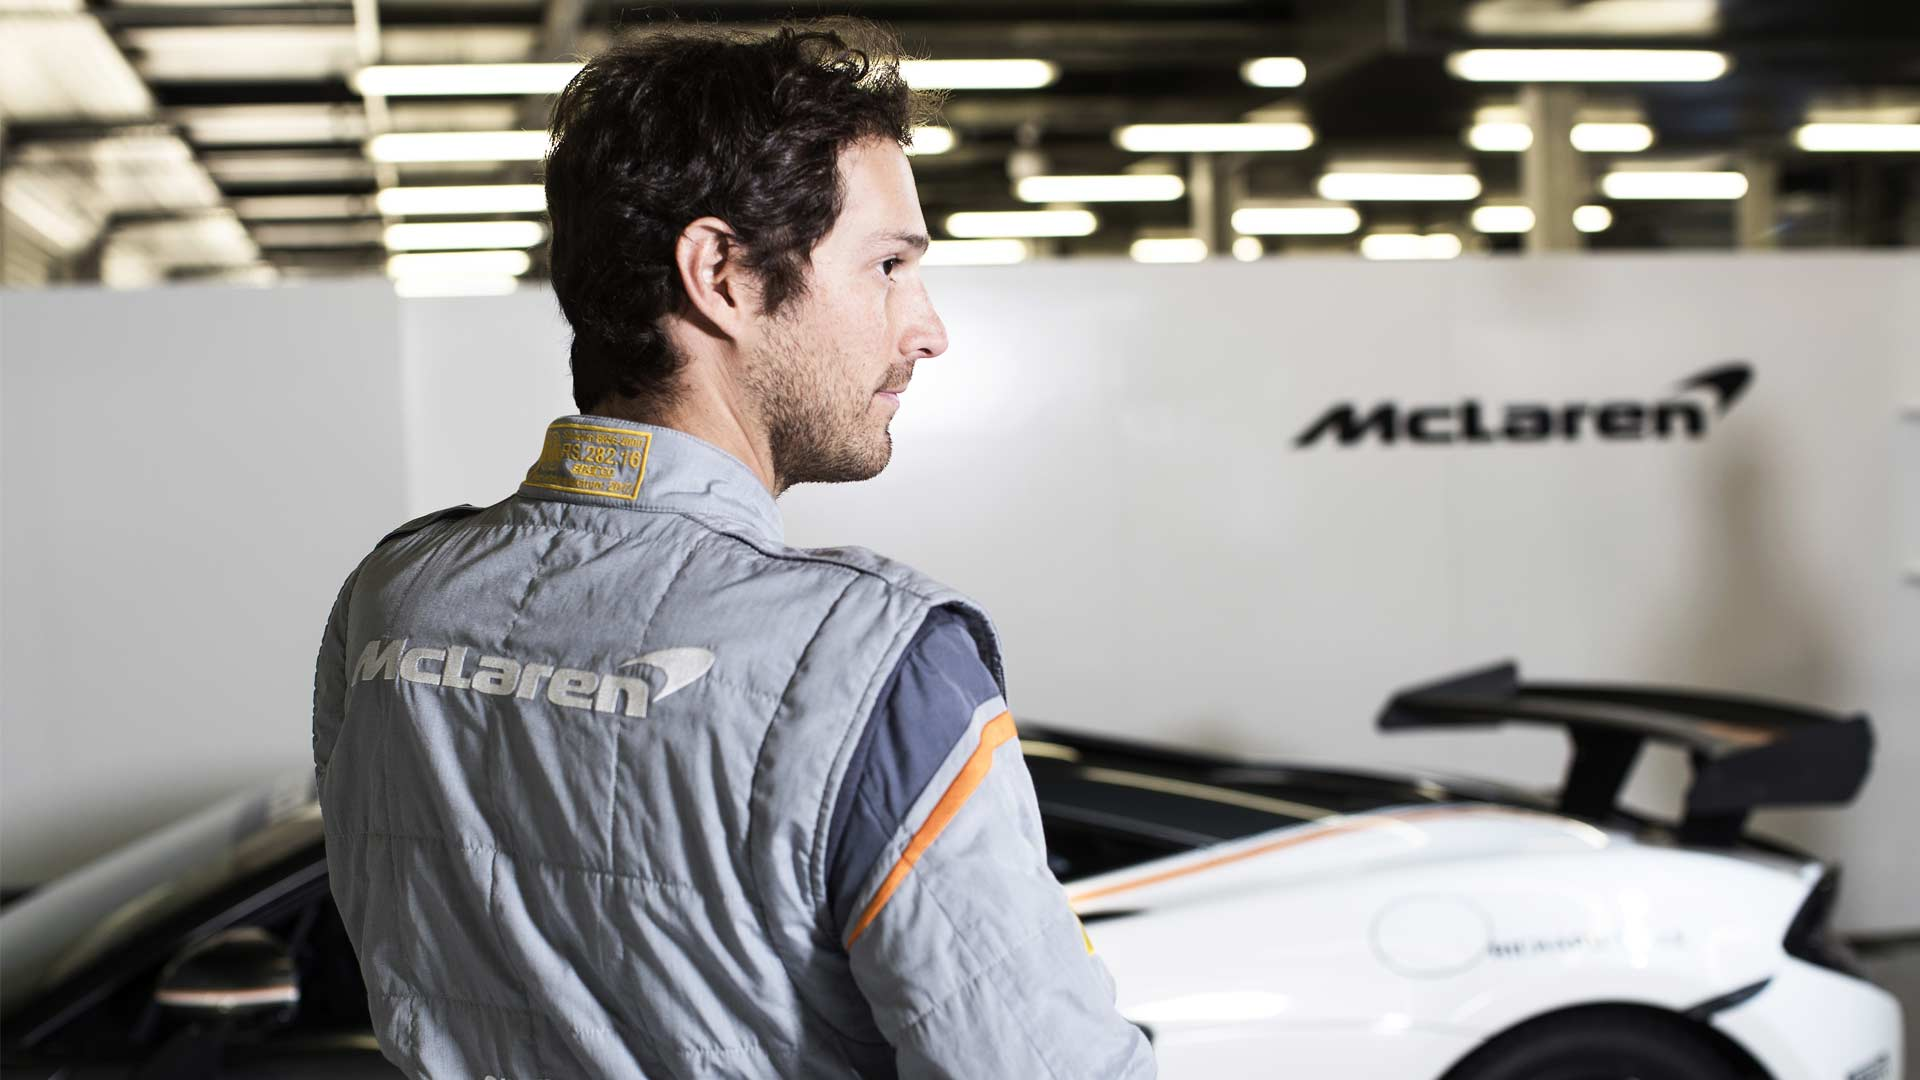 McLaren-and-Sparco-world's-lightest-FIA-certified-race-suit_2